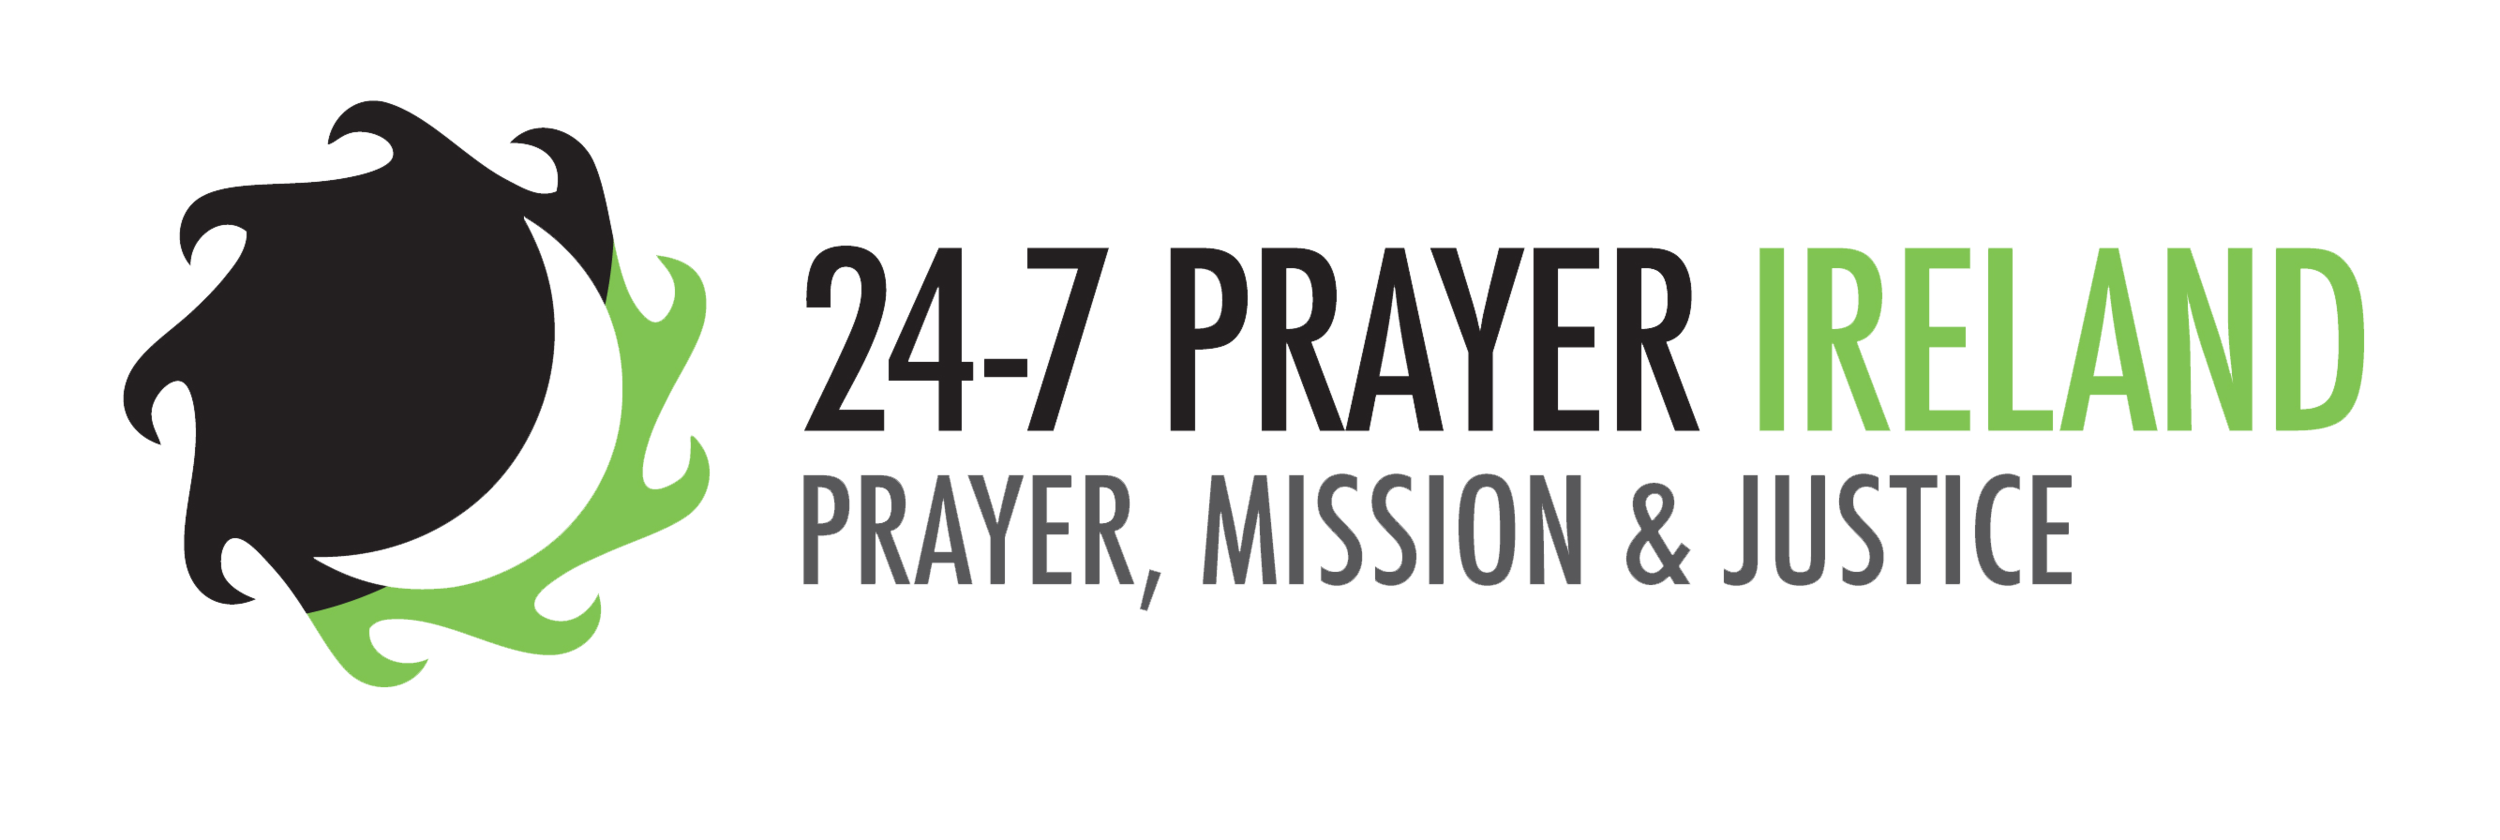 24-7 Prayer is an international, interdenominationalmovement of prayer, mission and justice that began withasingle, student-ledprayer vigil in Chichester, Englandin 1999 and has spread, by word-of-mouth, into100+ nations.